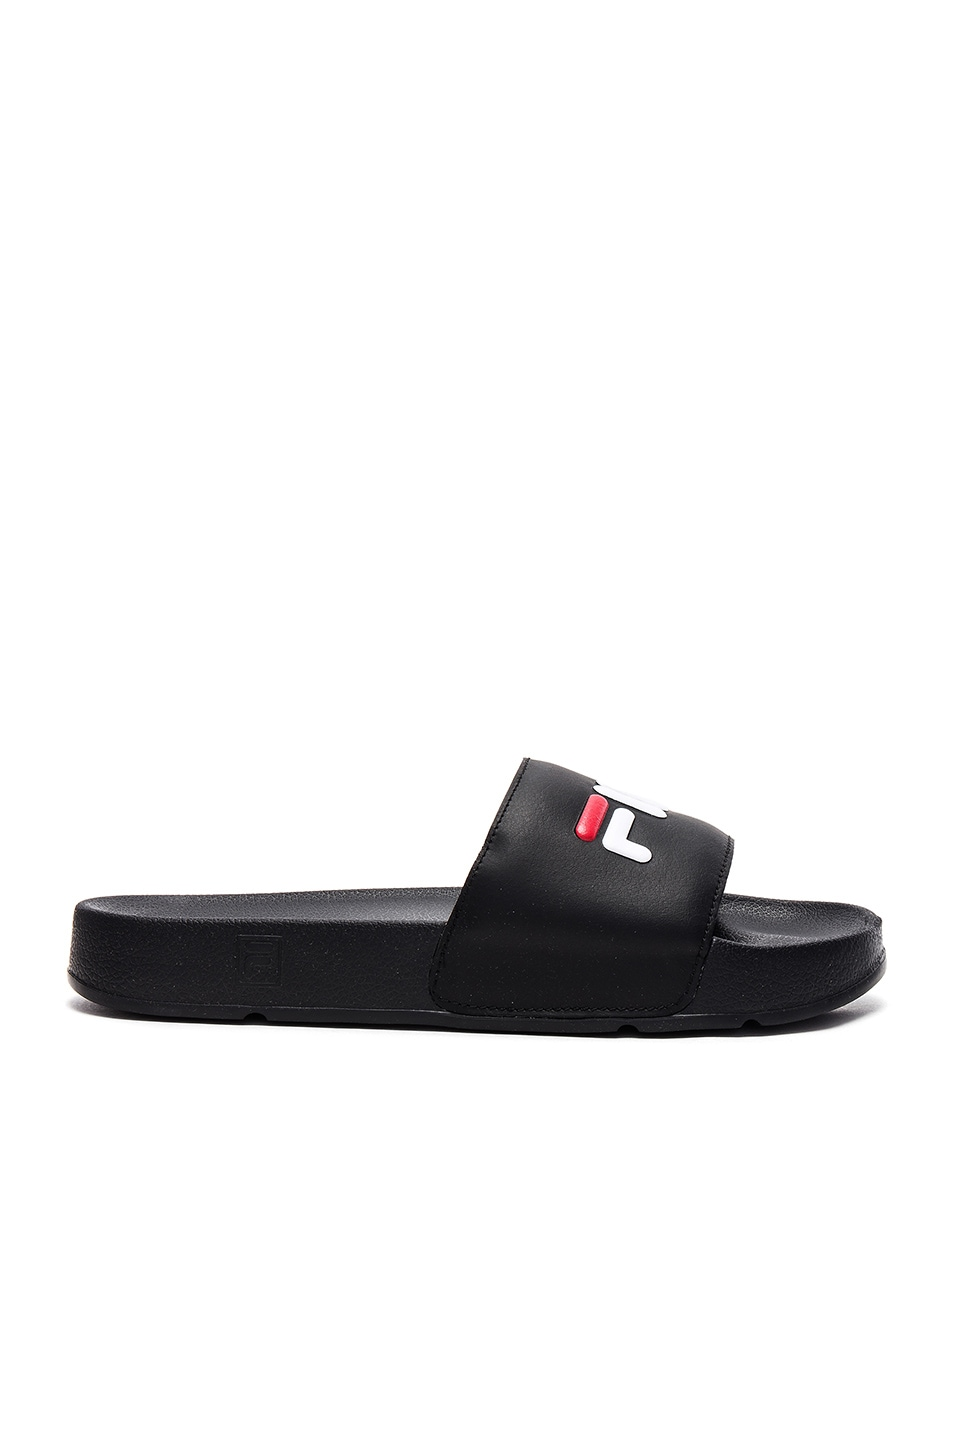 Drifter Slides by Fila